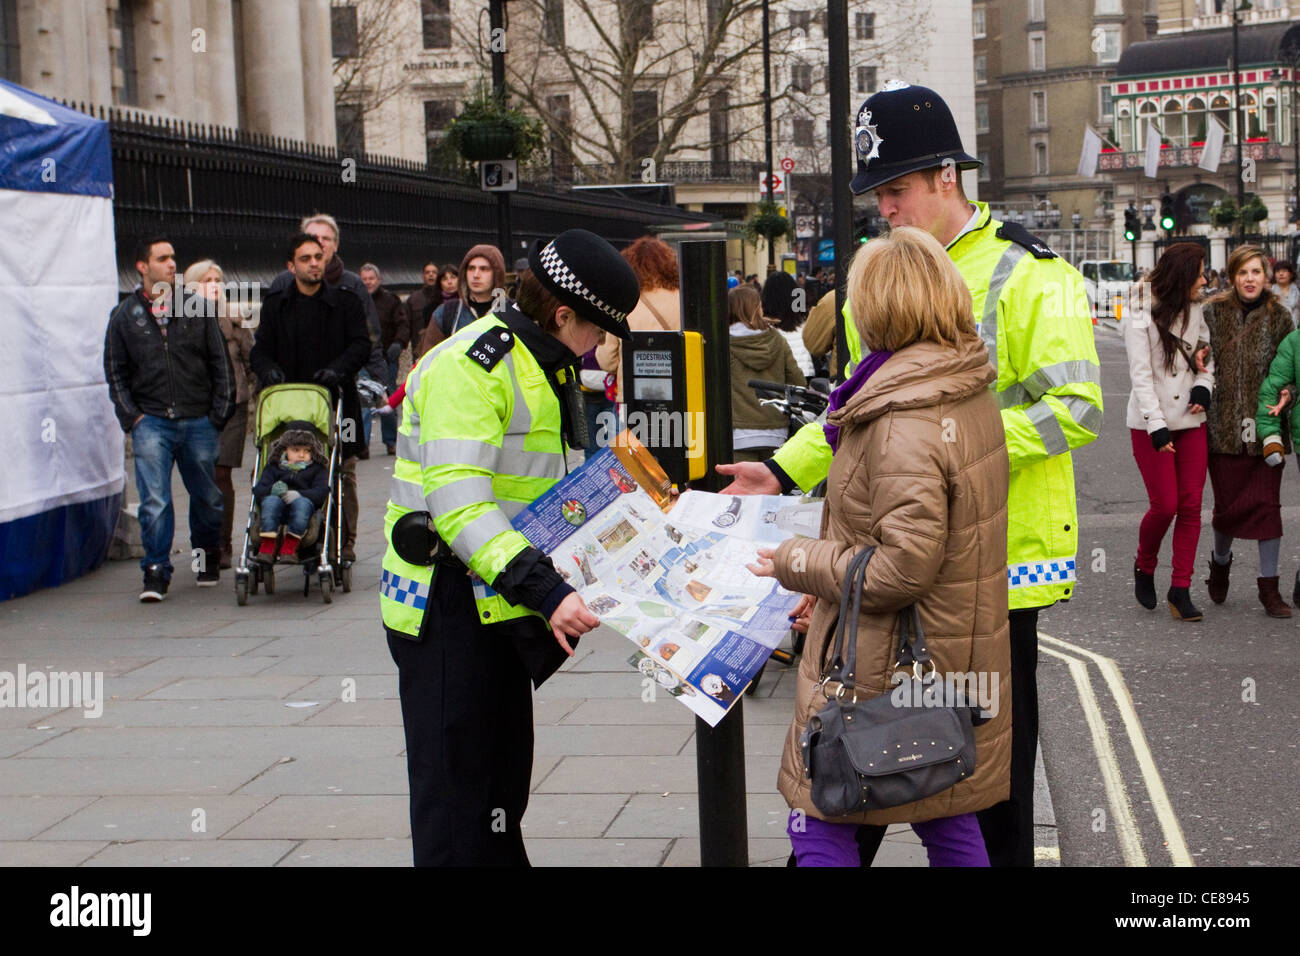 A lost tourist asking for directions from the police, London, England, UK - Stock Image